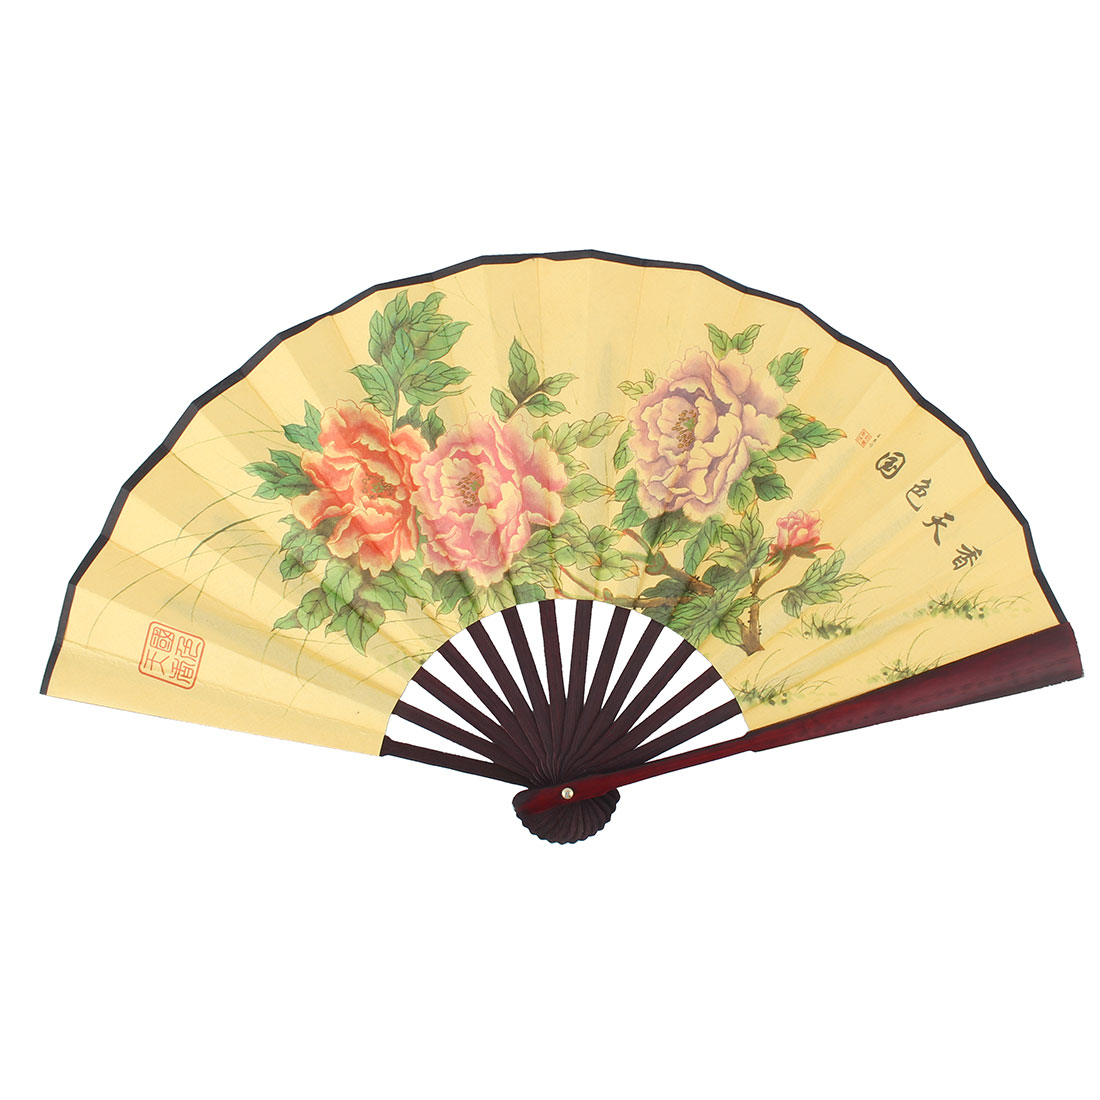 Wood Frame Peony Pattern Printing Chinese Character Retro Folding Handheld Fan